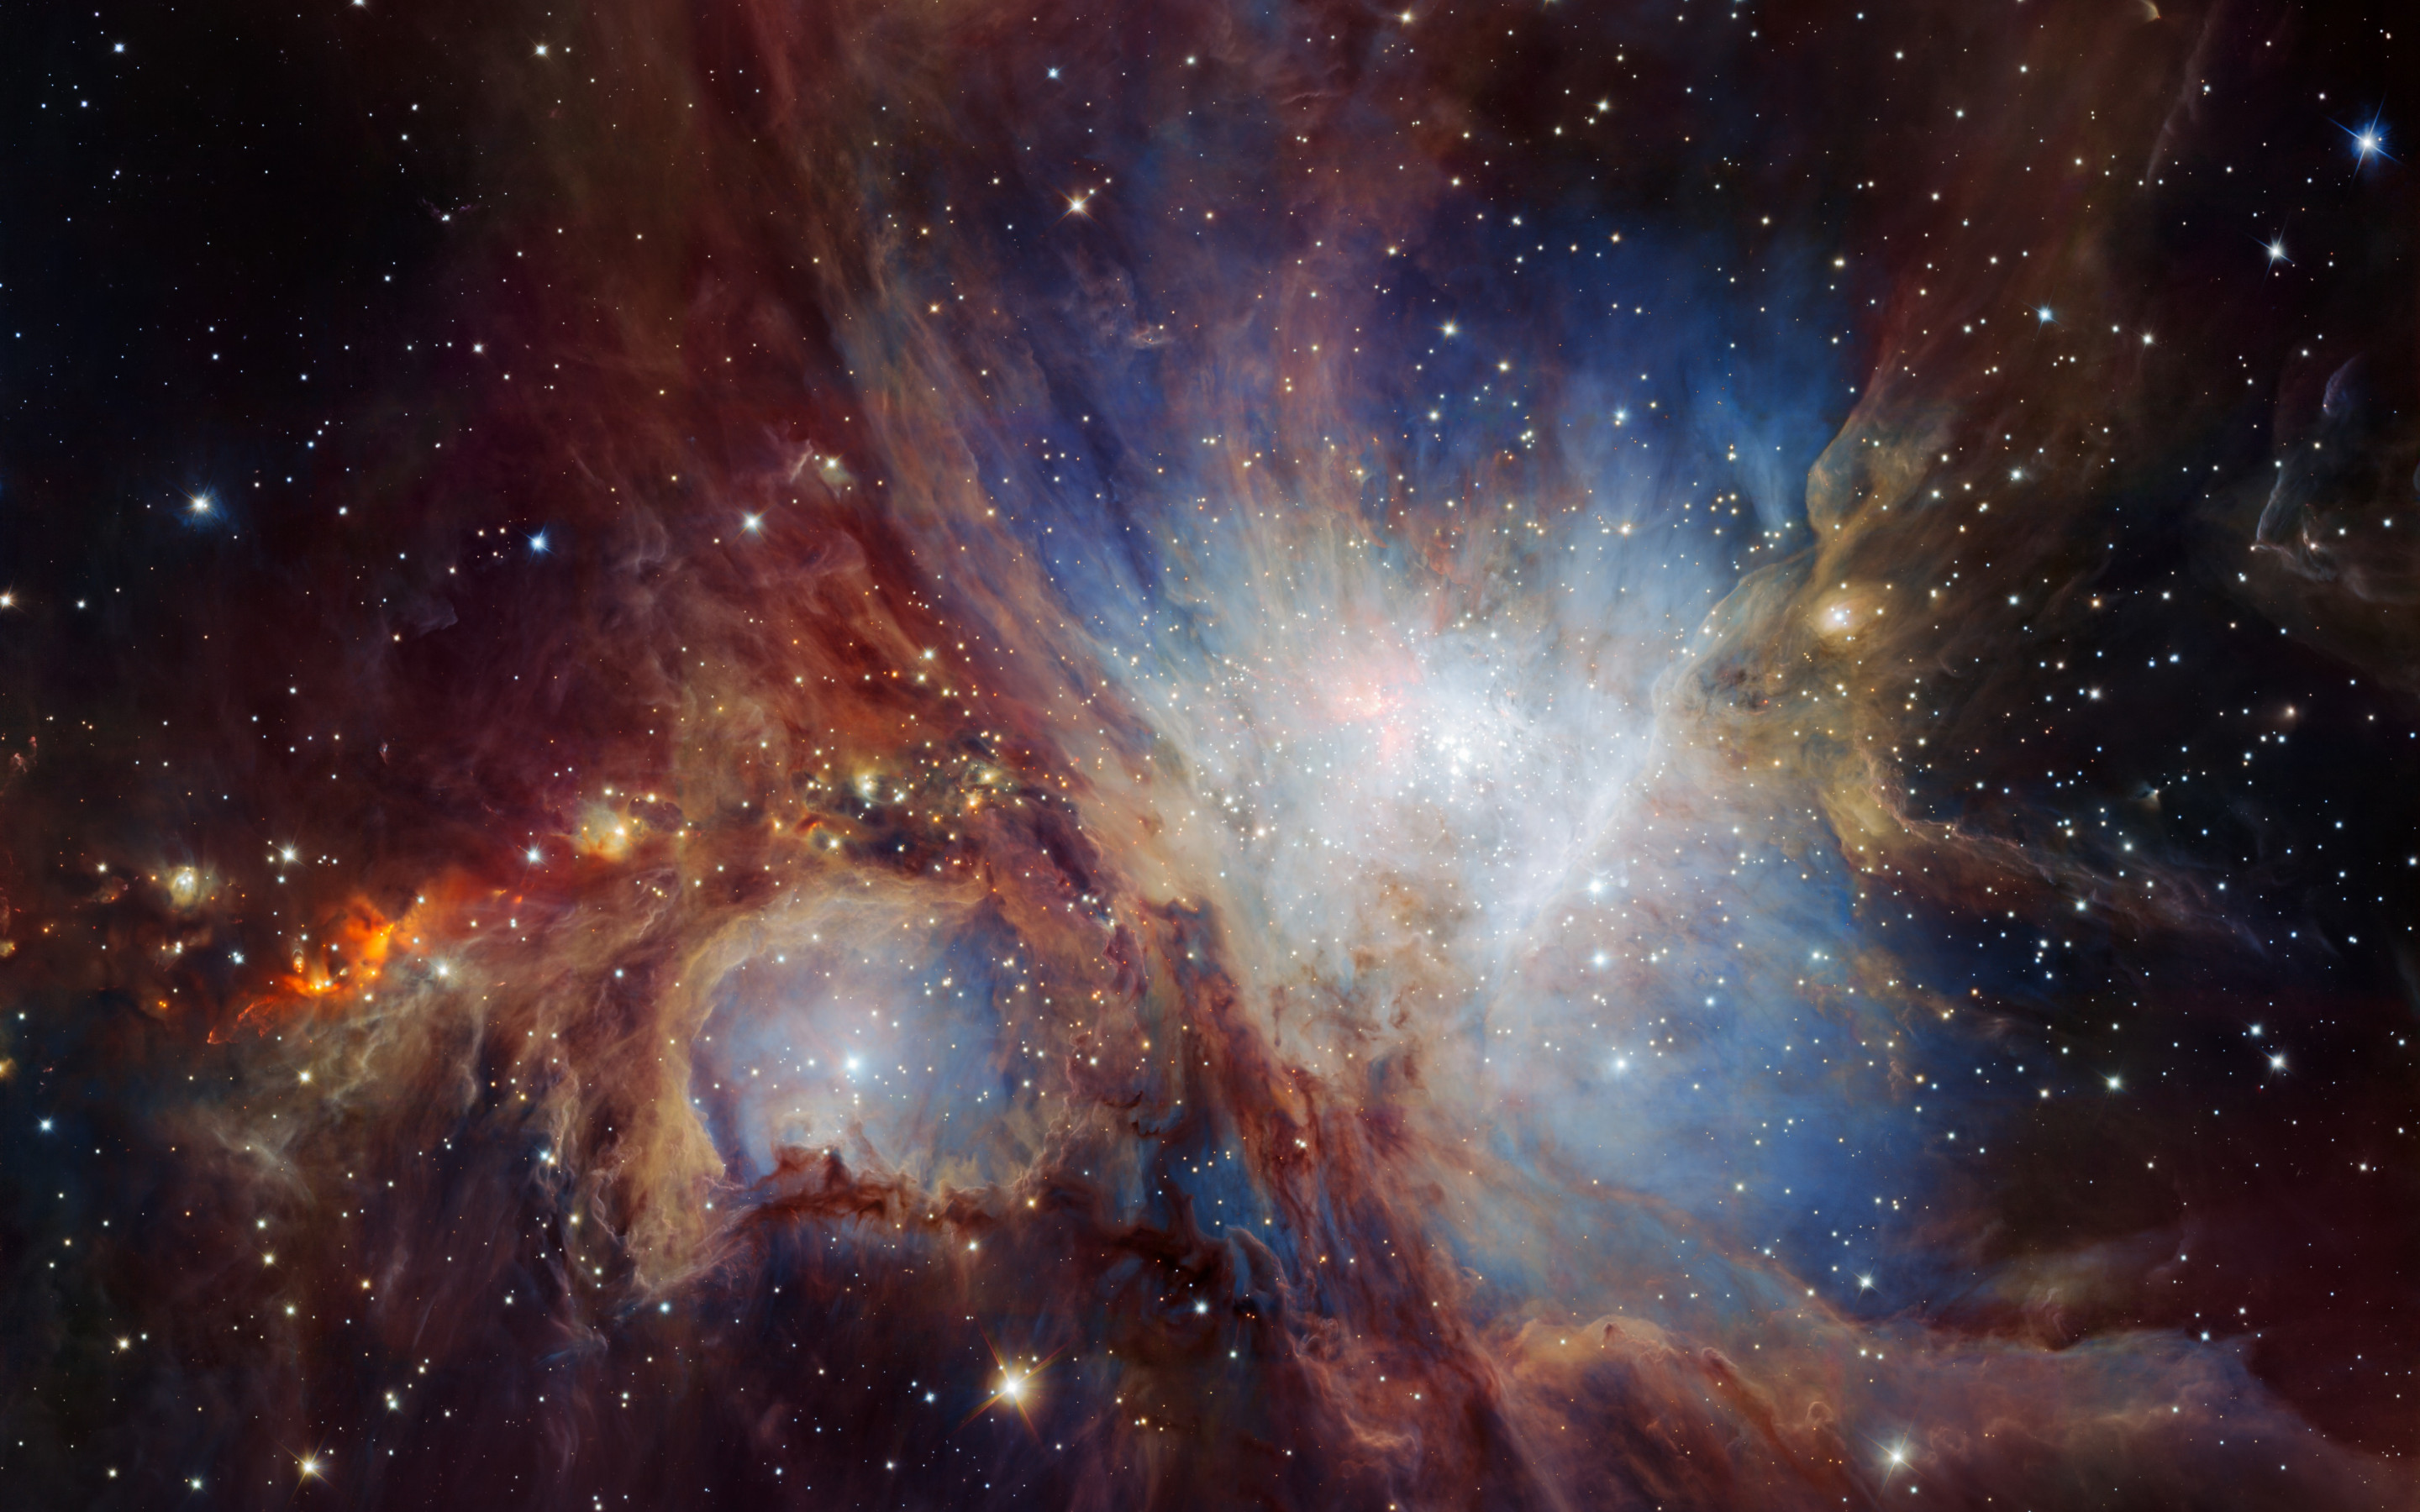 Infrared view of the Orion Nebula wallpaper 2880x1800